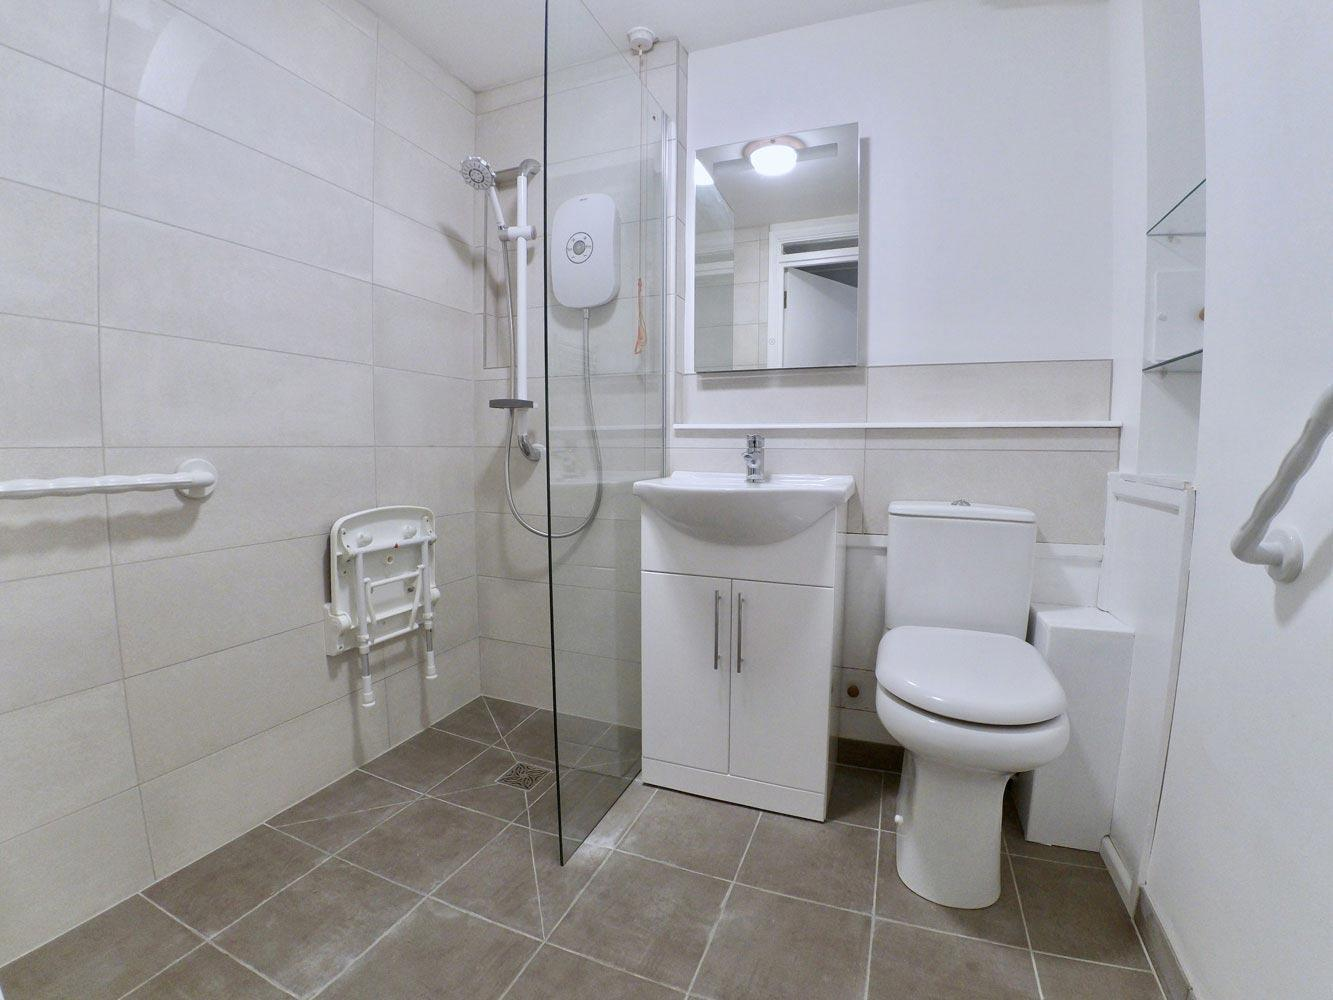 visually-impaired-bathroom-modifications-for-seniors